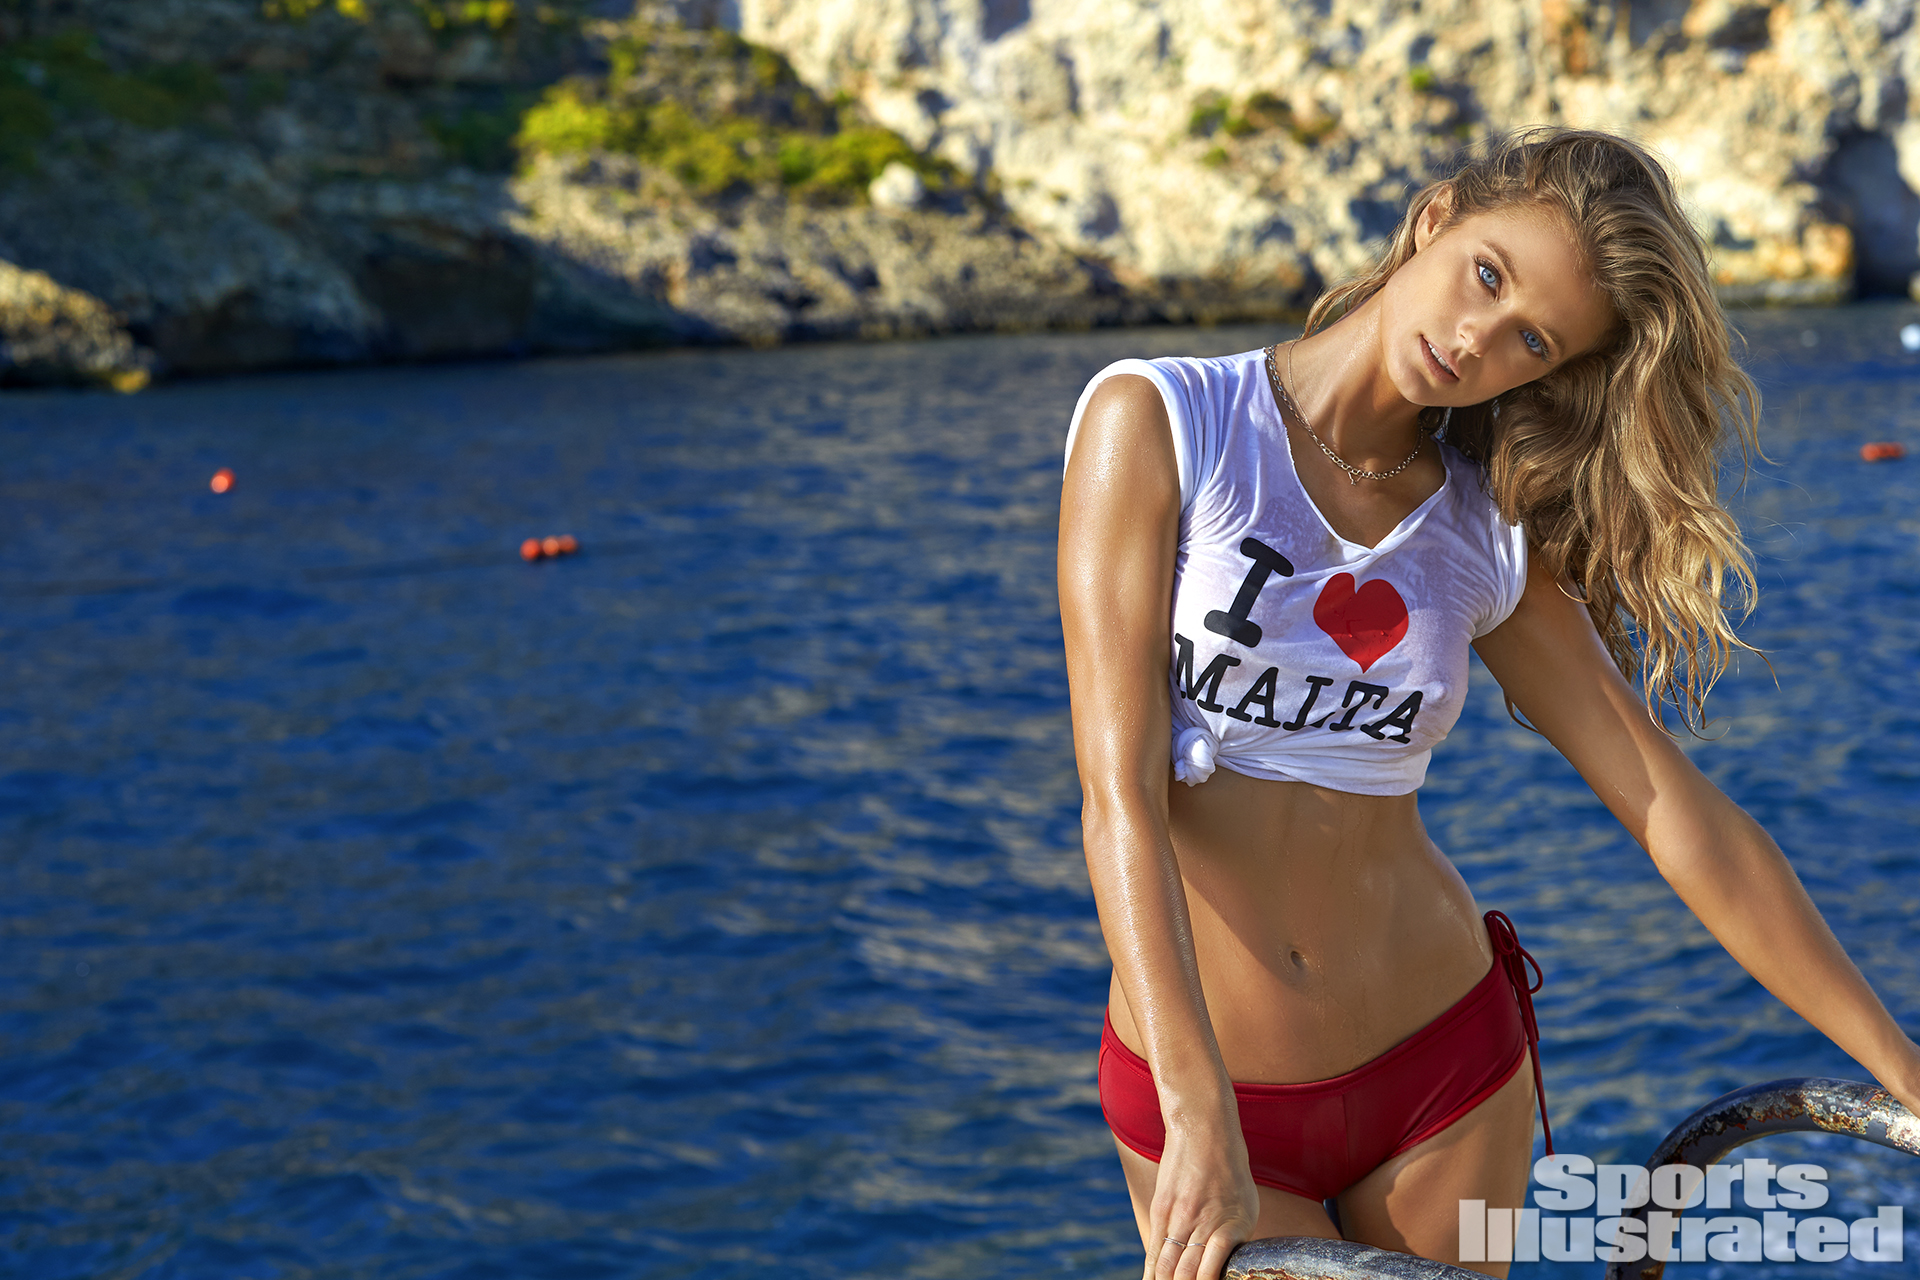 Kate Bock was photographed by Ben Watts in Malta. Swimsuit by MI OLA.